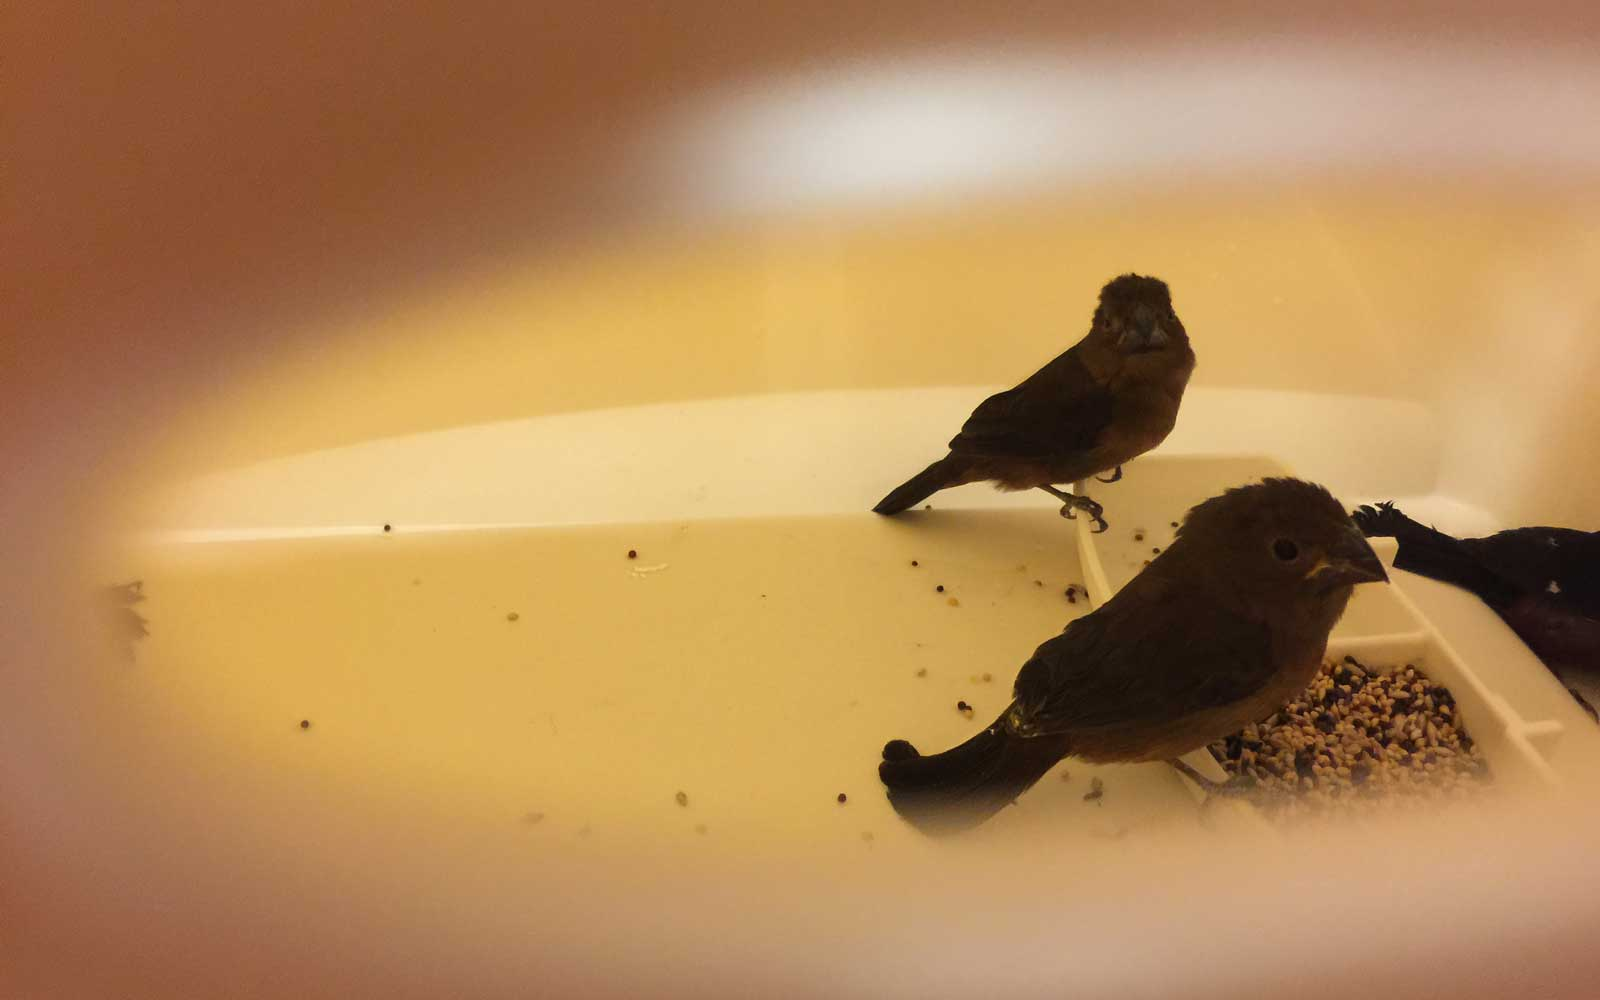 Finches found by CBP at JFK Airport